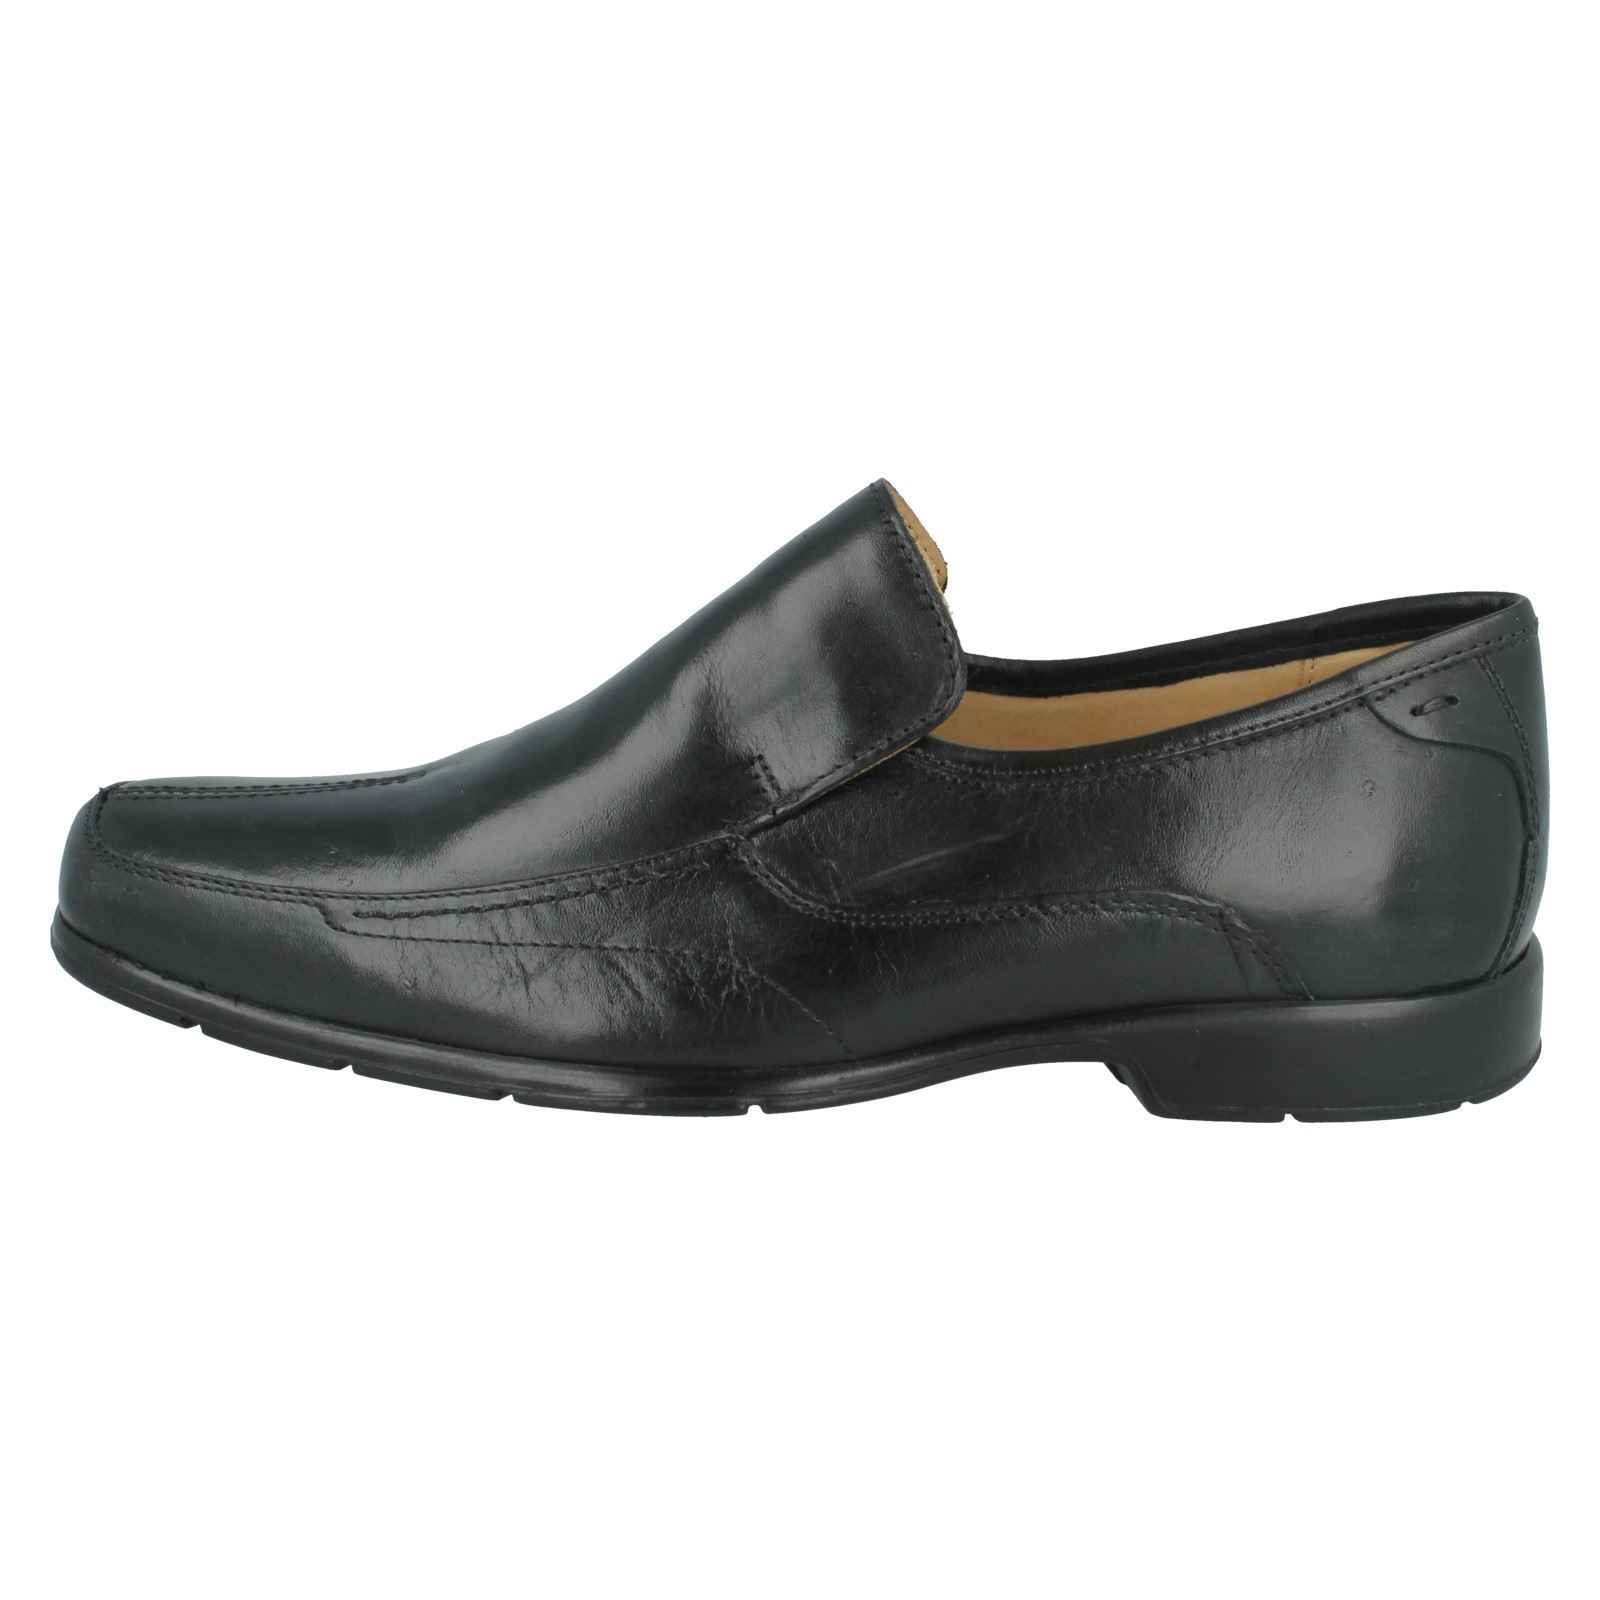 Mens Anatomic & Co - Formal Leather Shoes the Style - Co Petropolis dd2bc8